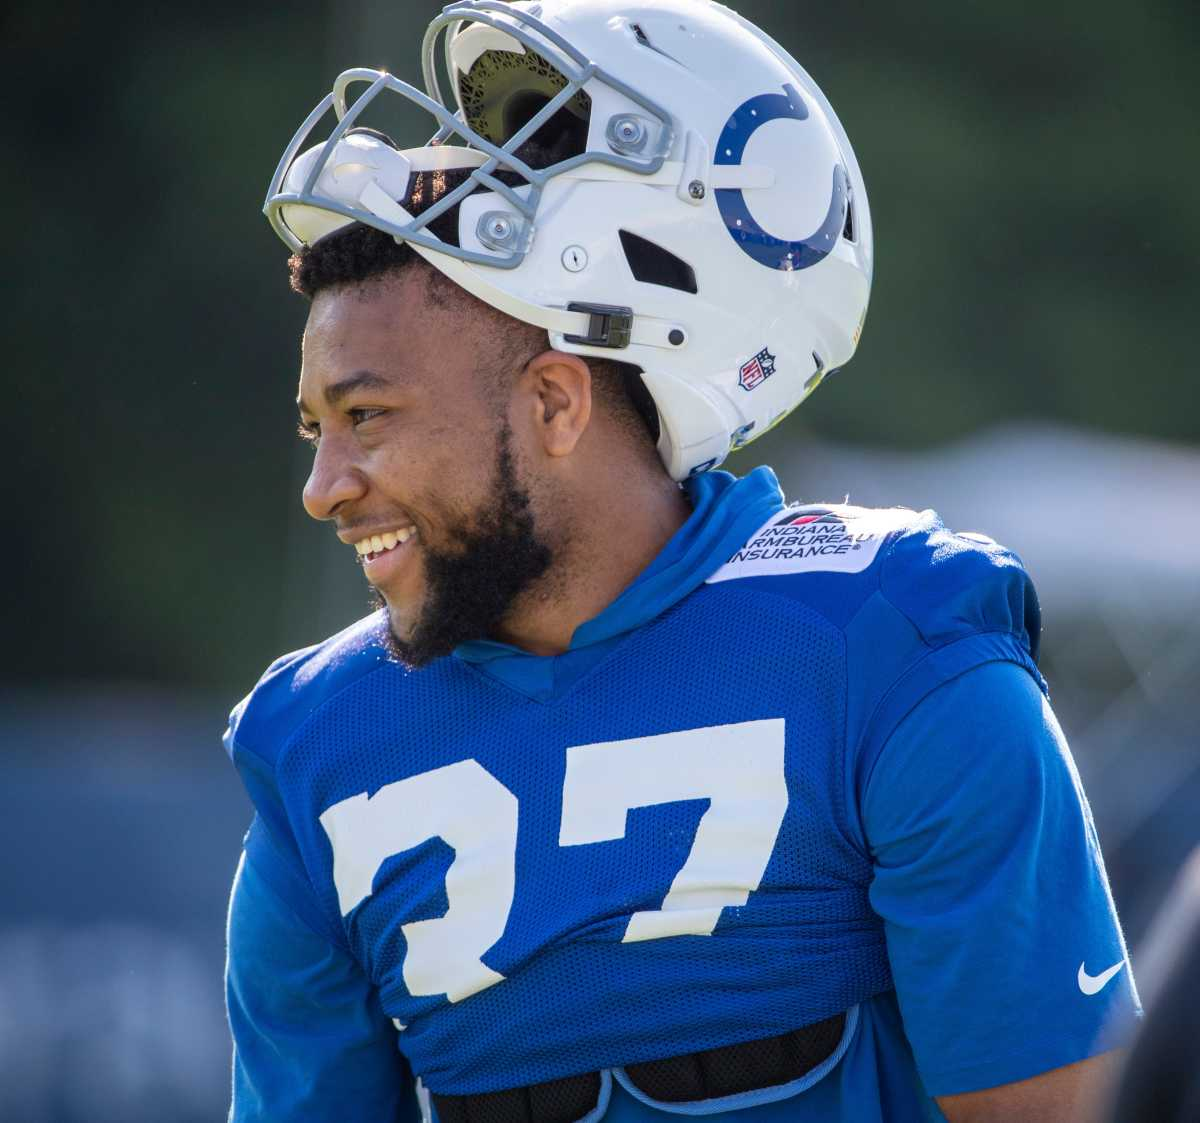 Indianapolis Colts safety Khari Willis (37) at Grand Park in Westfield on Monday, August 2, 2021, on the second week of workouts of this summer's Colts training camp. Head Coach Frank Reich reappeared at practice after being away for ten days after a COVID-19 positive test. Colts Get Their Coach Back On Week Two Of Colts Camp